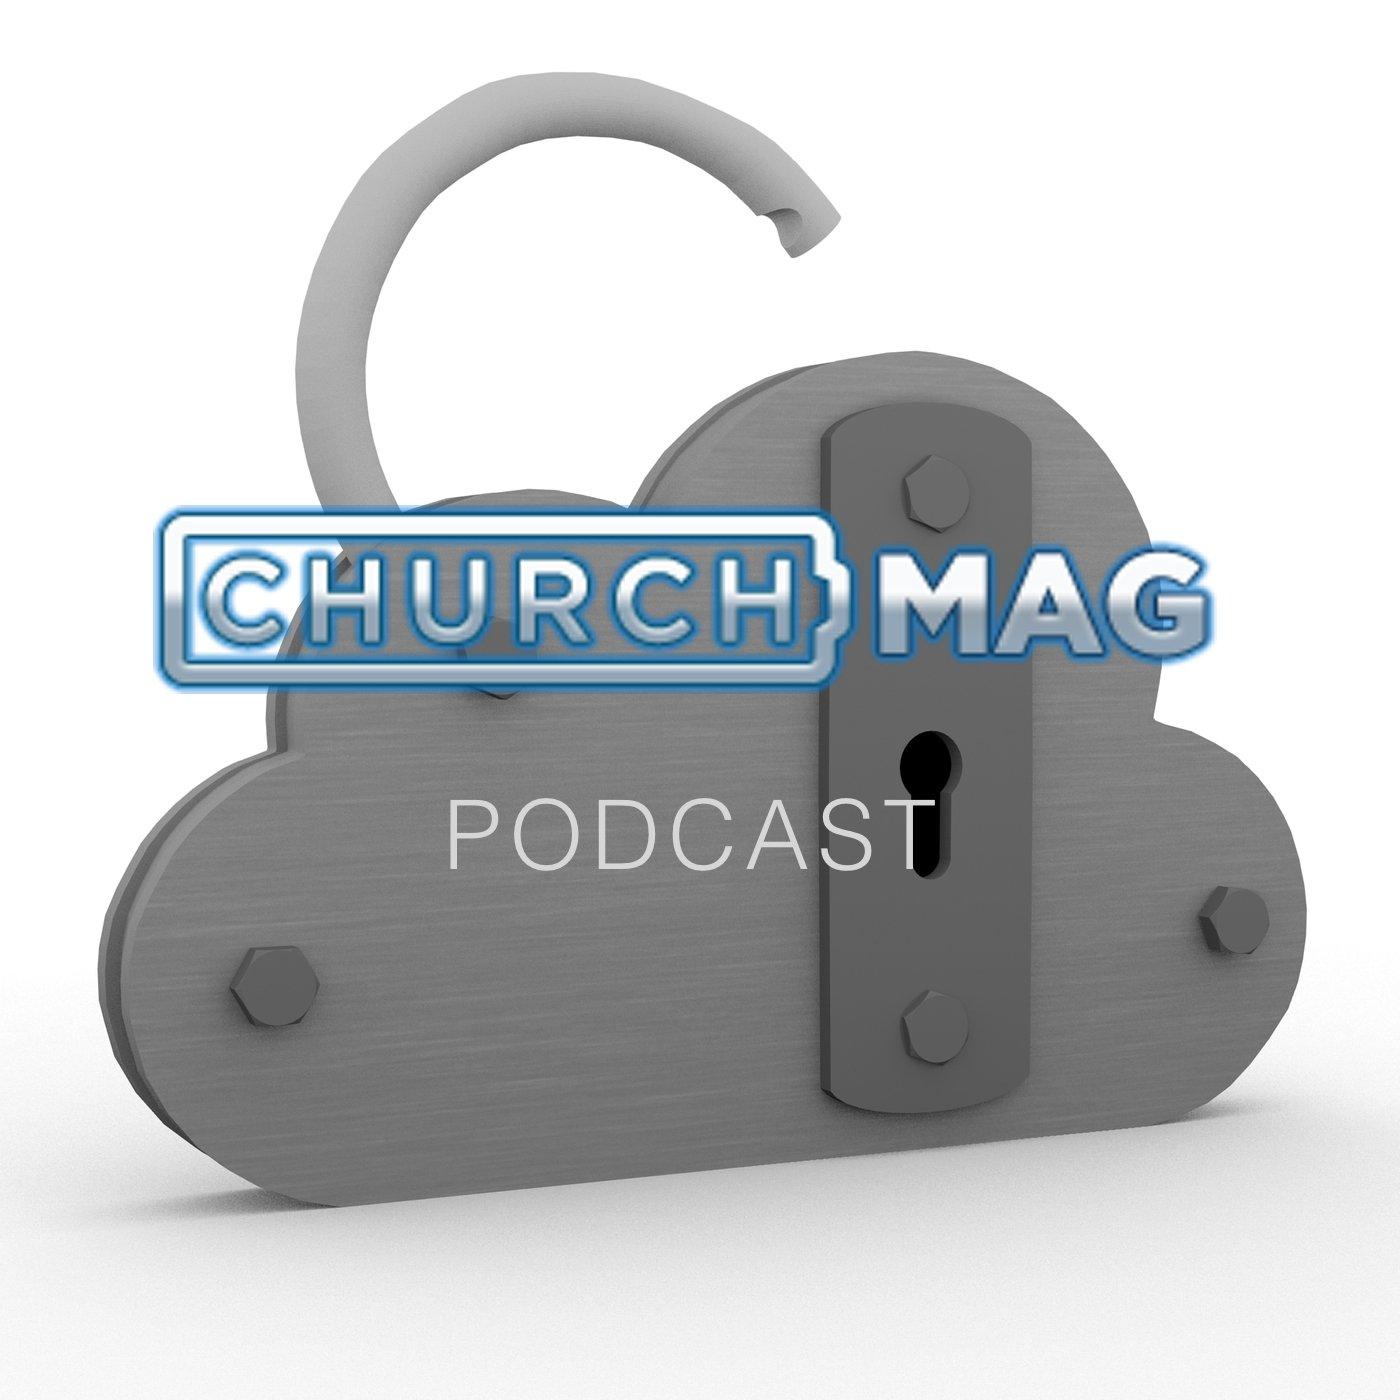 ChurchMag Podcast - Who Owns Your Church Website?